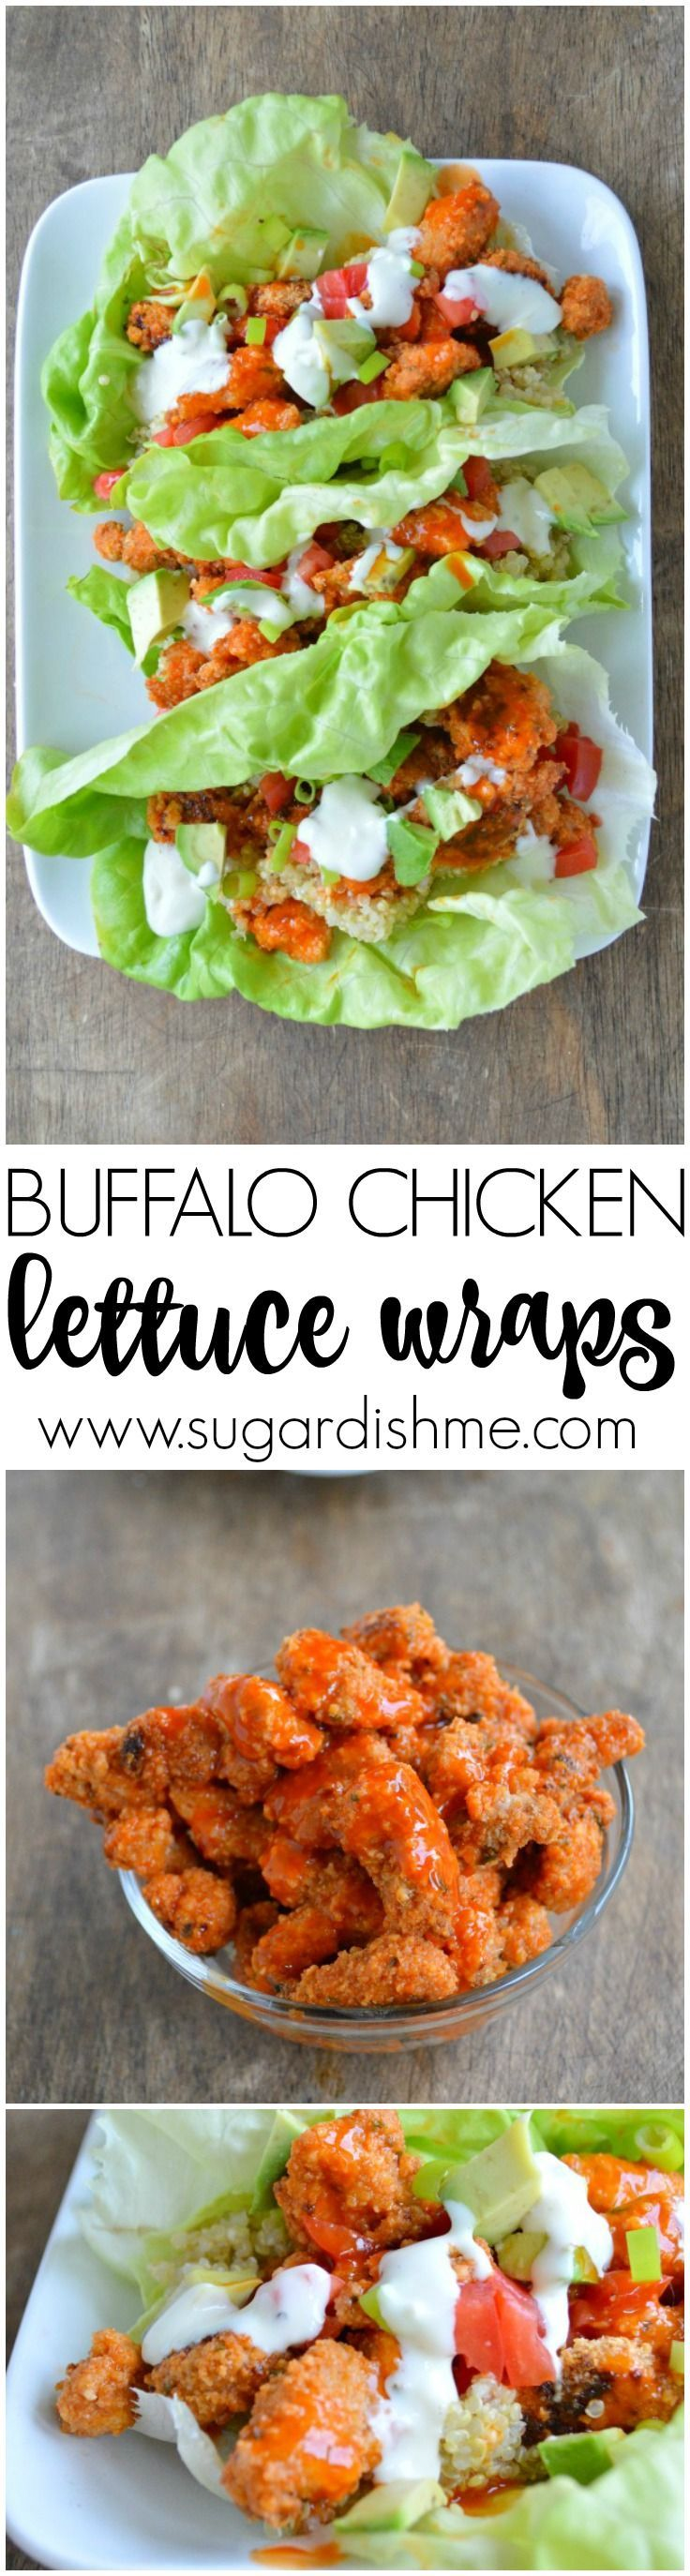 Buffalo Chicken Lettuce Wraps make a deliciously nutritious light and filling lunch or dinner. Oven fried buffalo chicken, quinoa, tomatoes, & avocado wrapped in lettuce